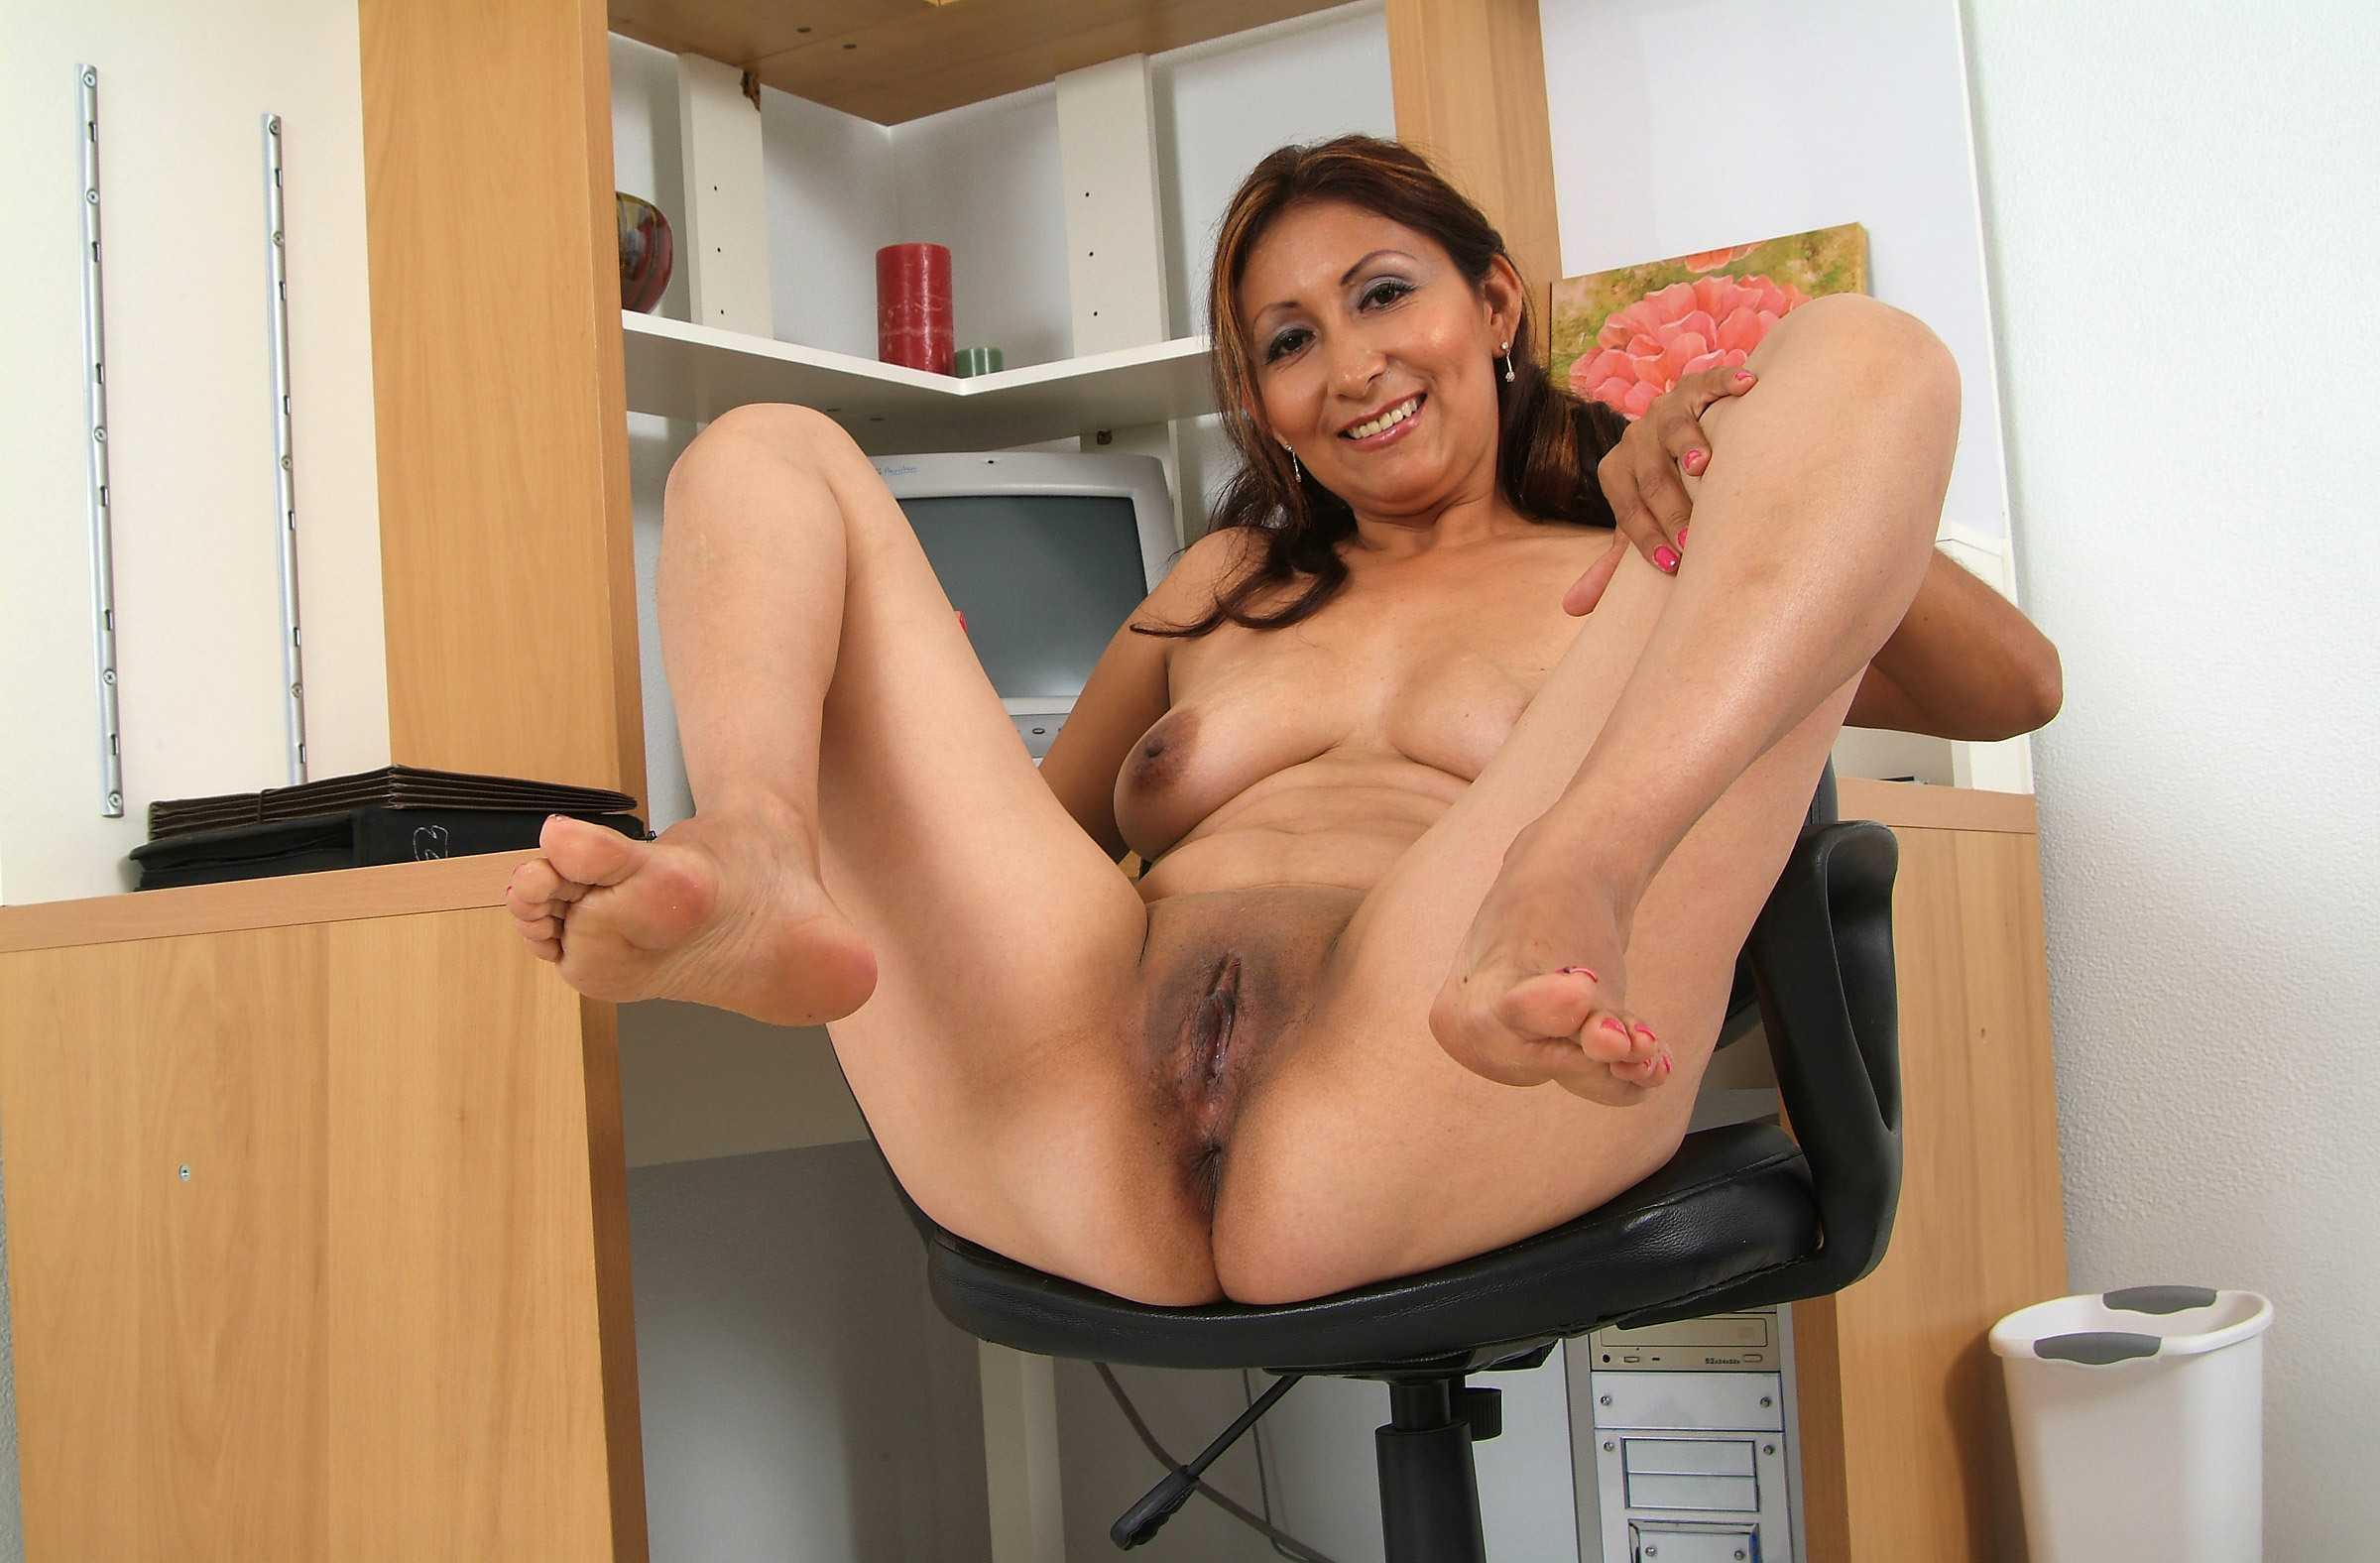 Possible latina milf anal movies free